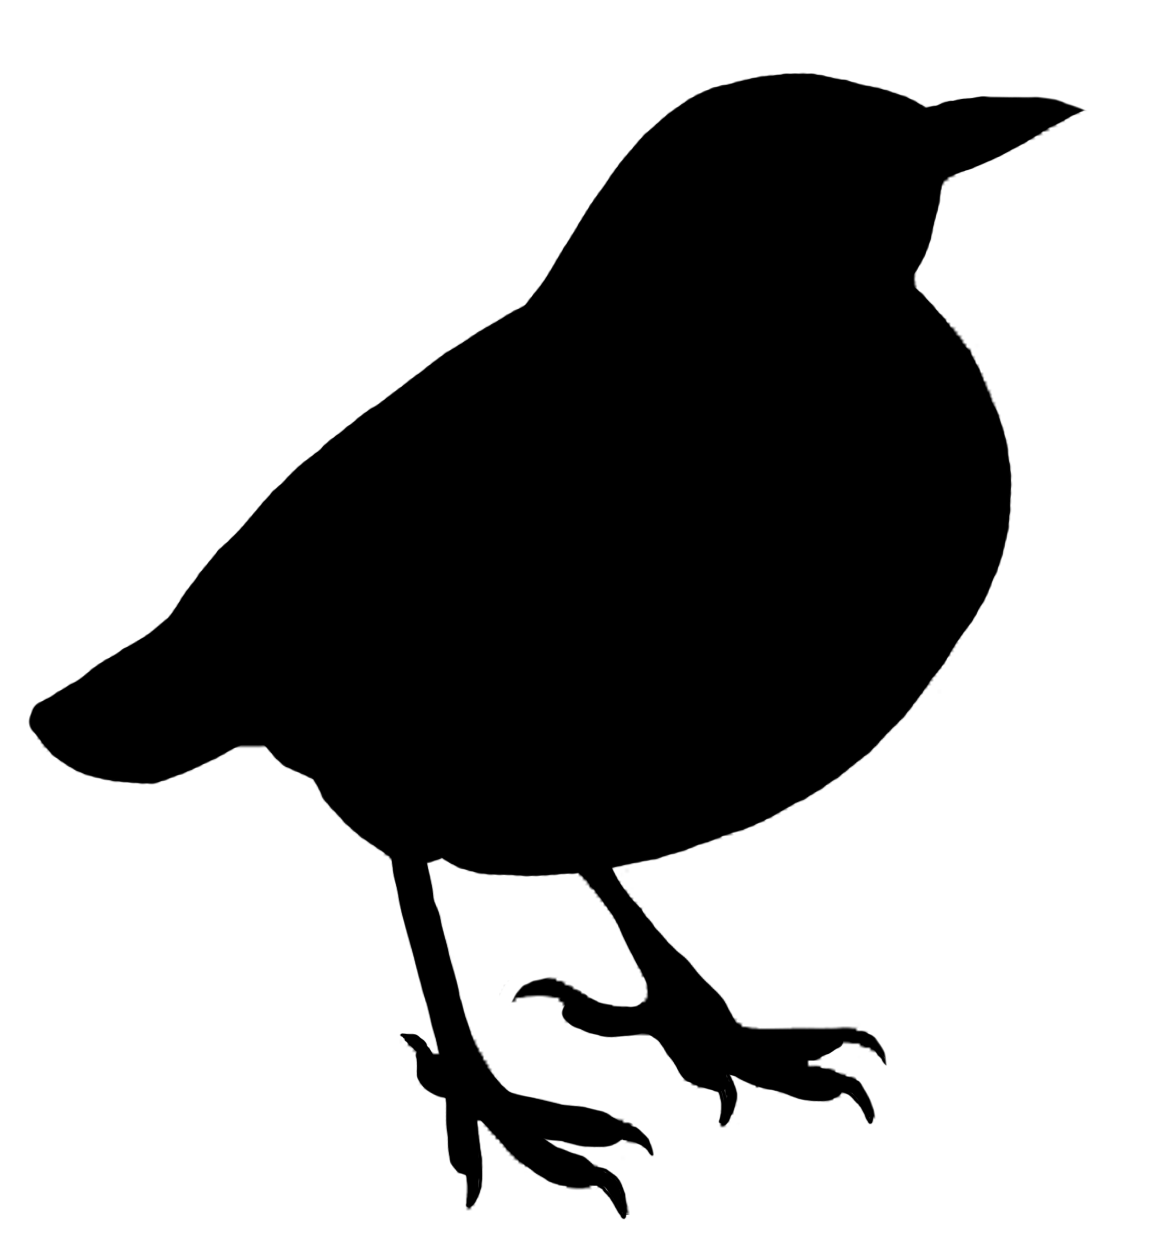 Silhouette png stickpng. Bird clipart transparent background